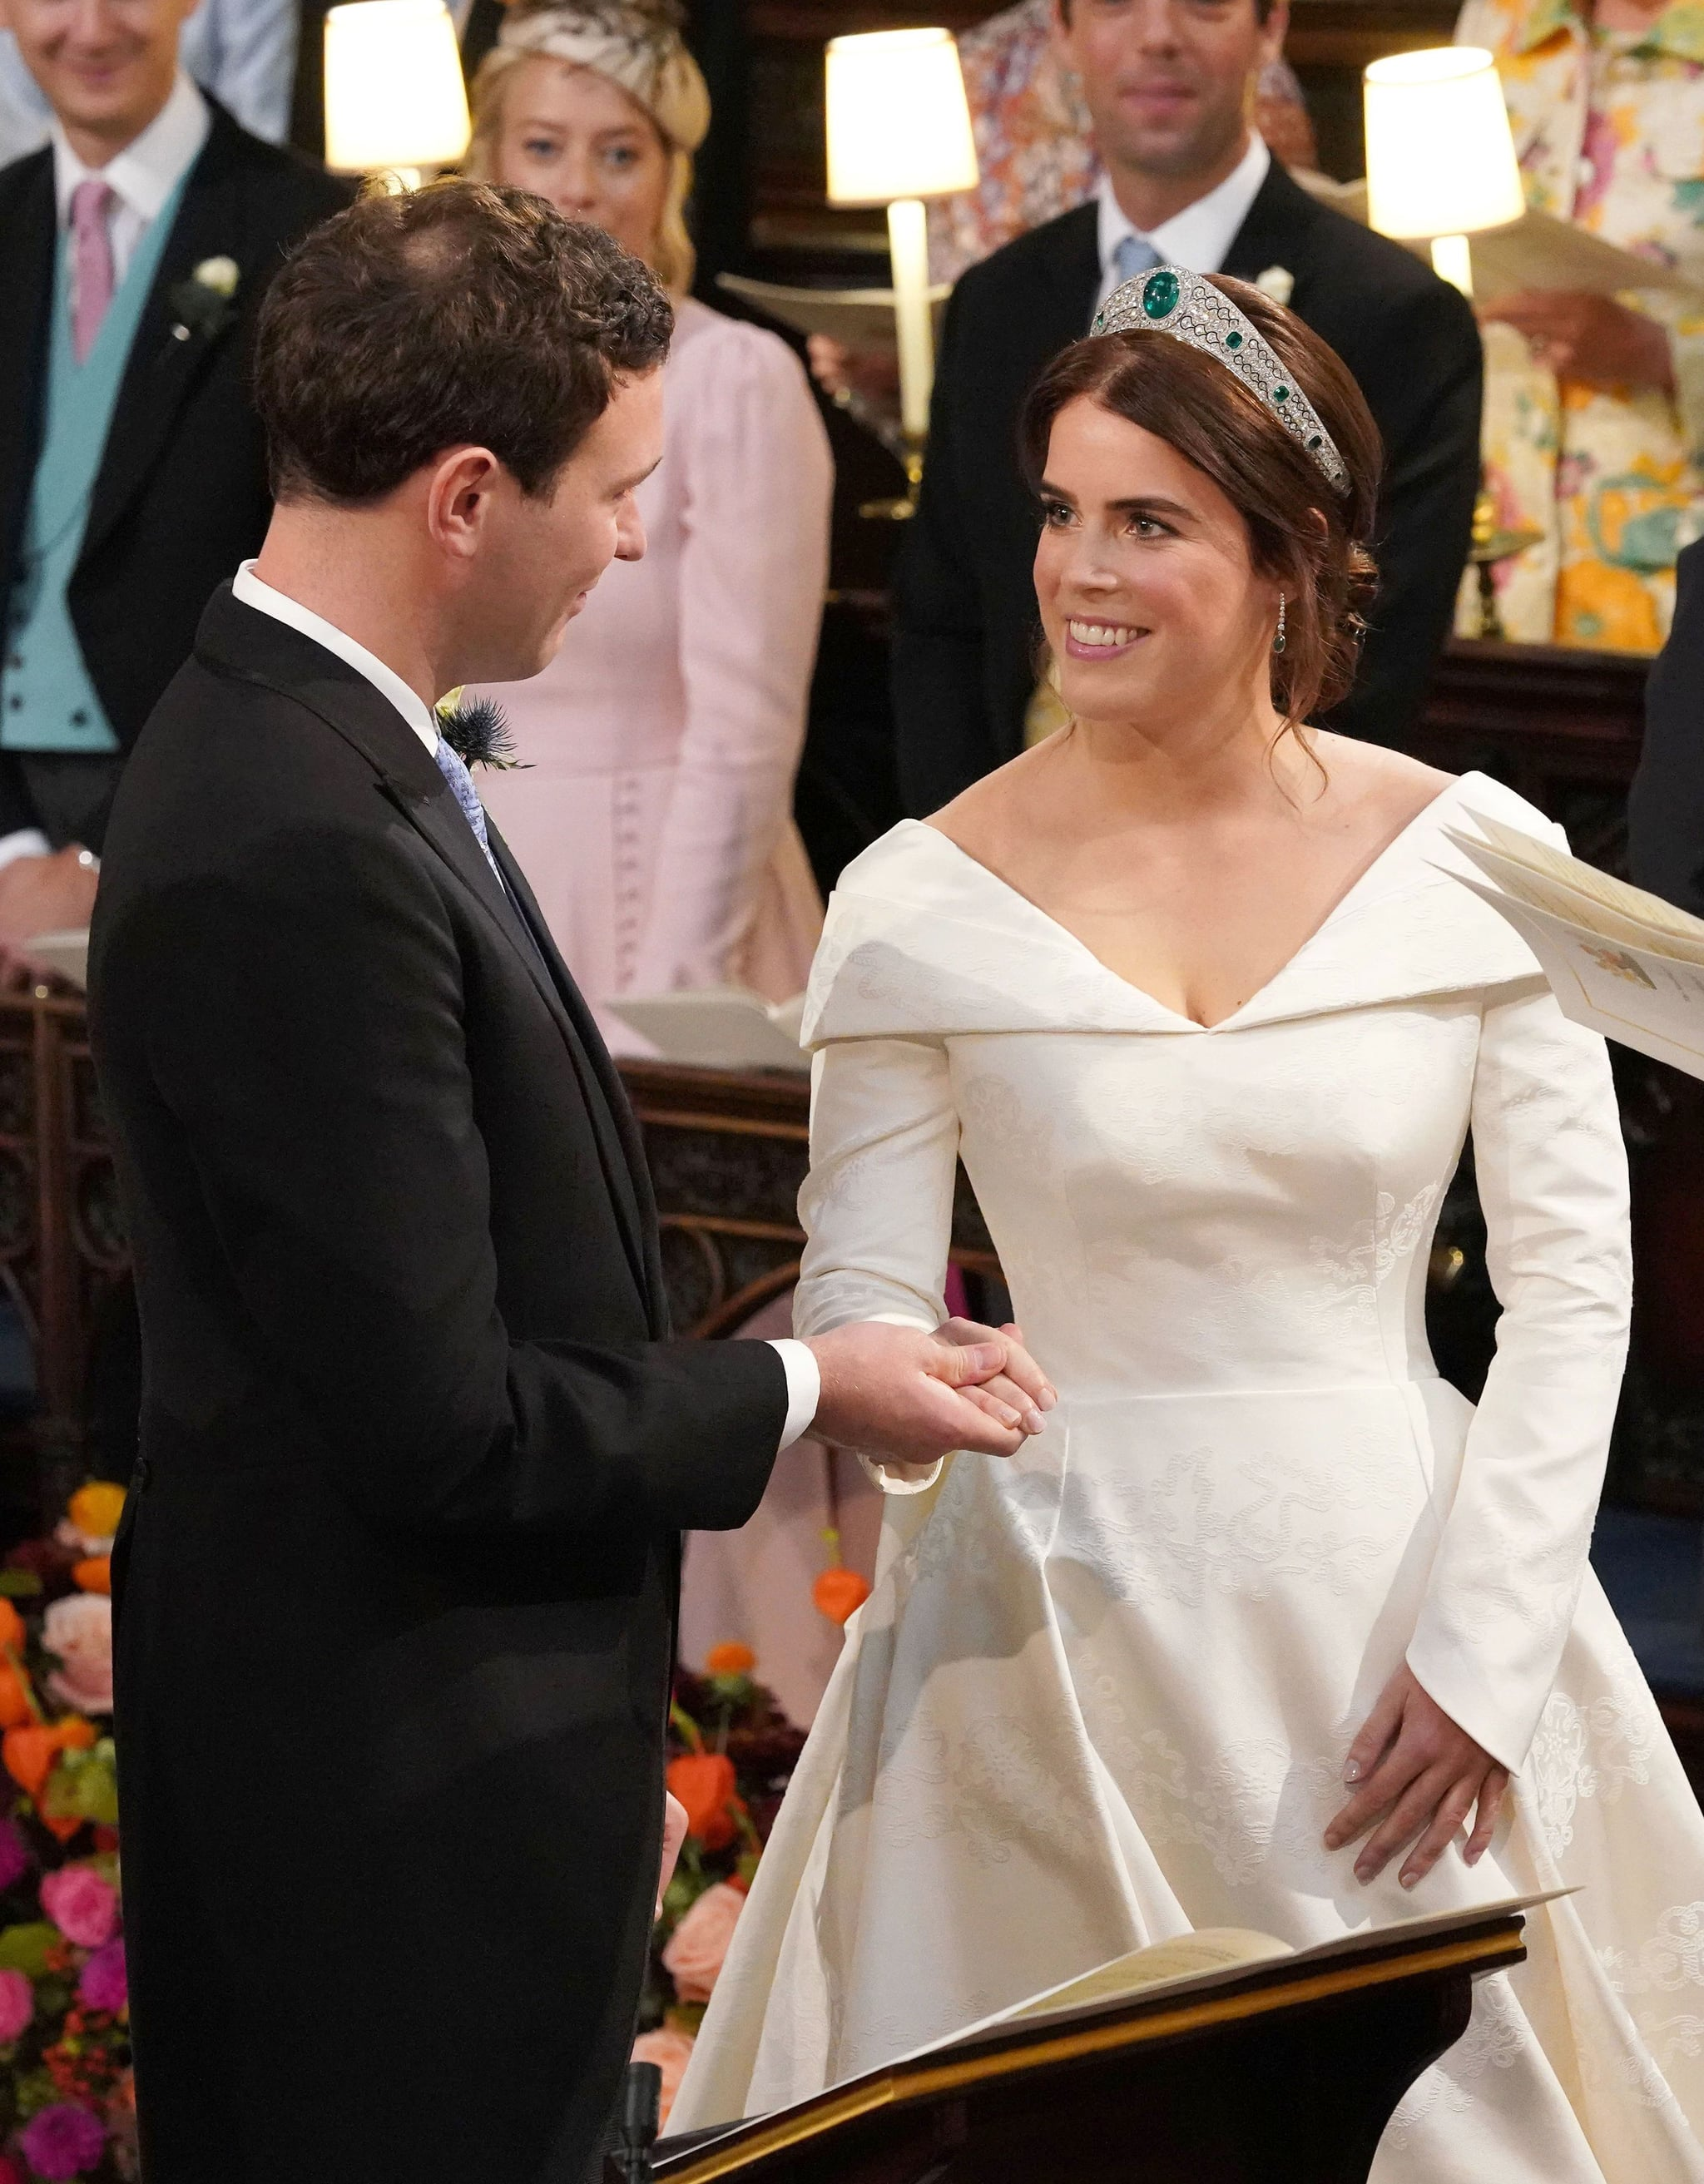 Britain's Princess Eugenie of York (R) is married to Jack Brooksbank during their wedding ceremony at St George's Chapel, Windsor Castle, in Windsor, on October 12, 2018. (Photo by Jonathan Brady / POOL / AFP)        (Photo credit should read JONATHAN BRADY/AFP/Getty Images)